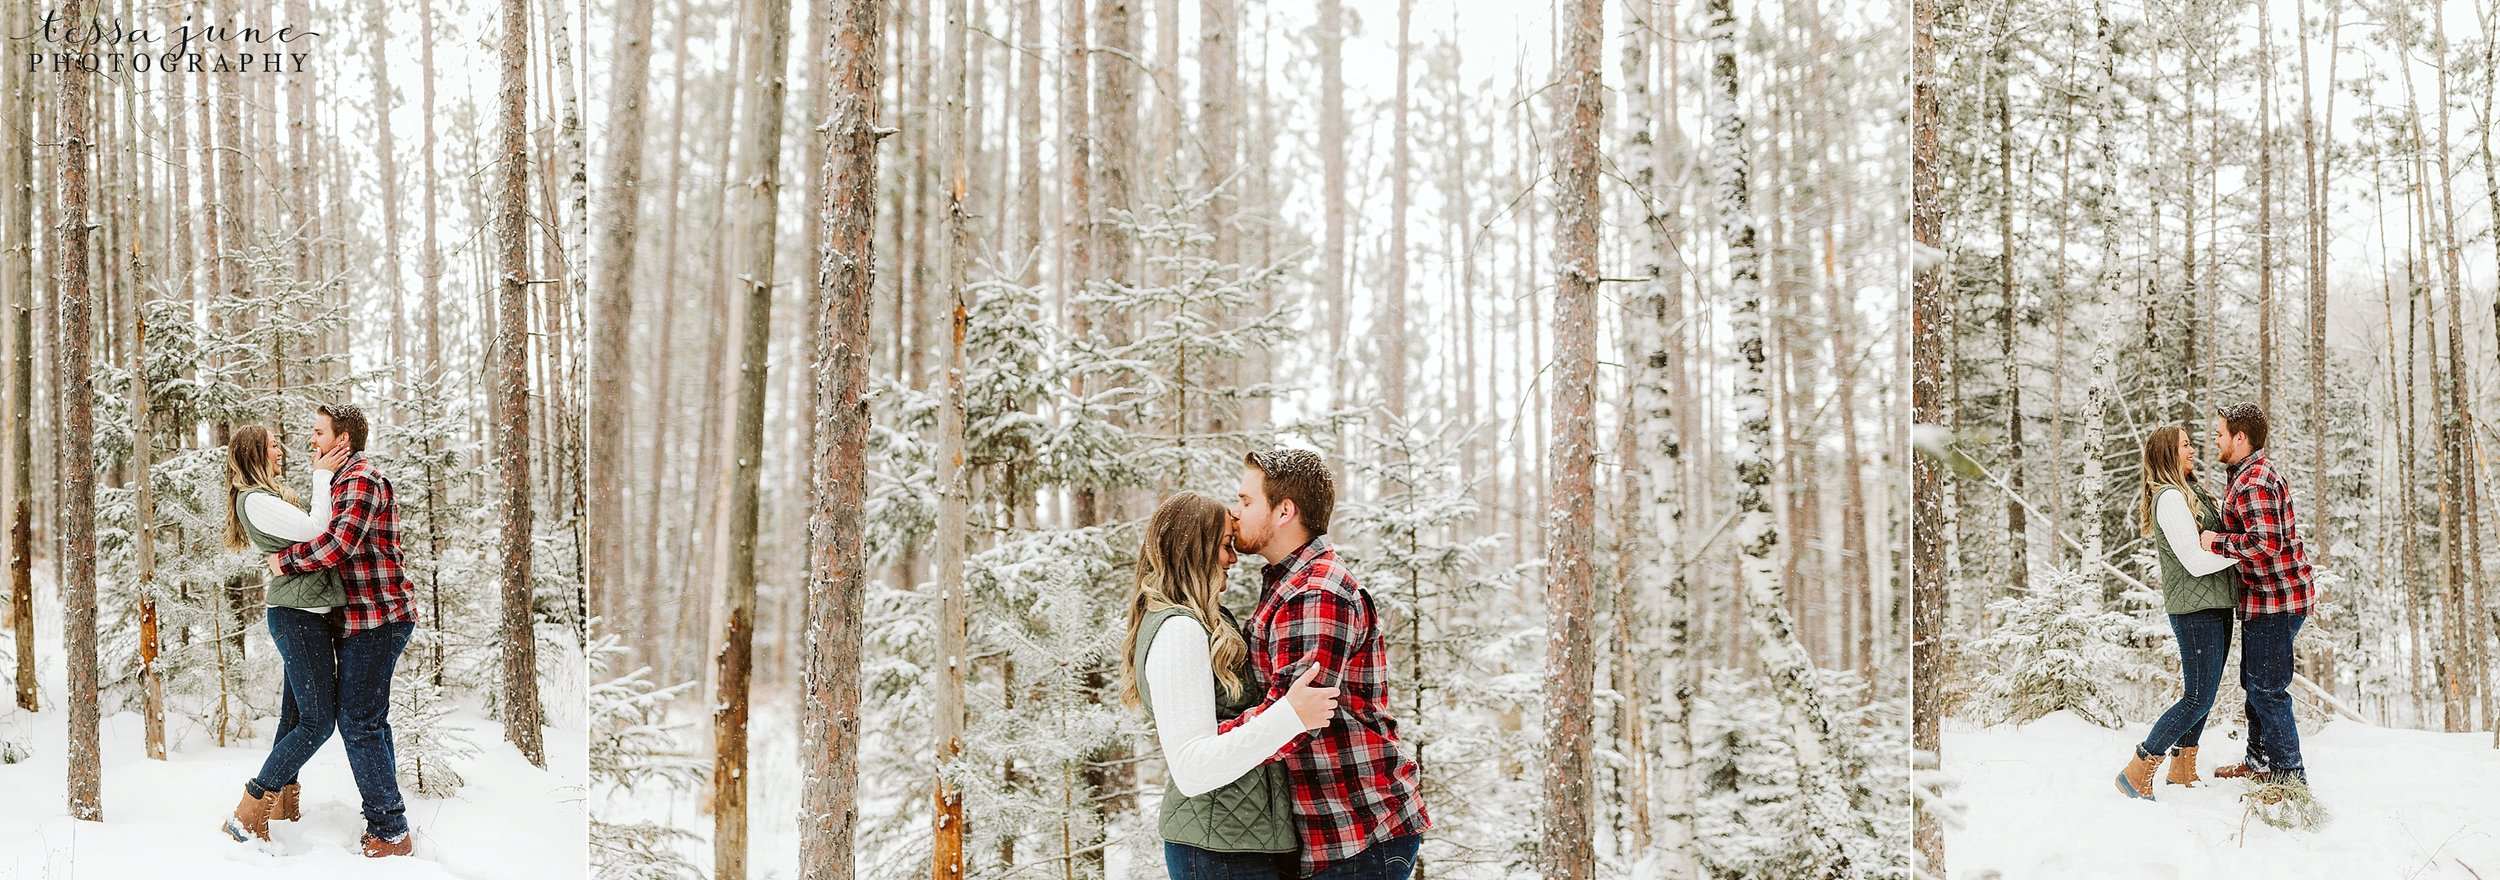 duluth-winter-engagement-forest-photos-during-snow-storm-2.jpg